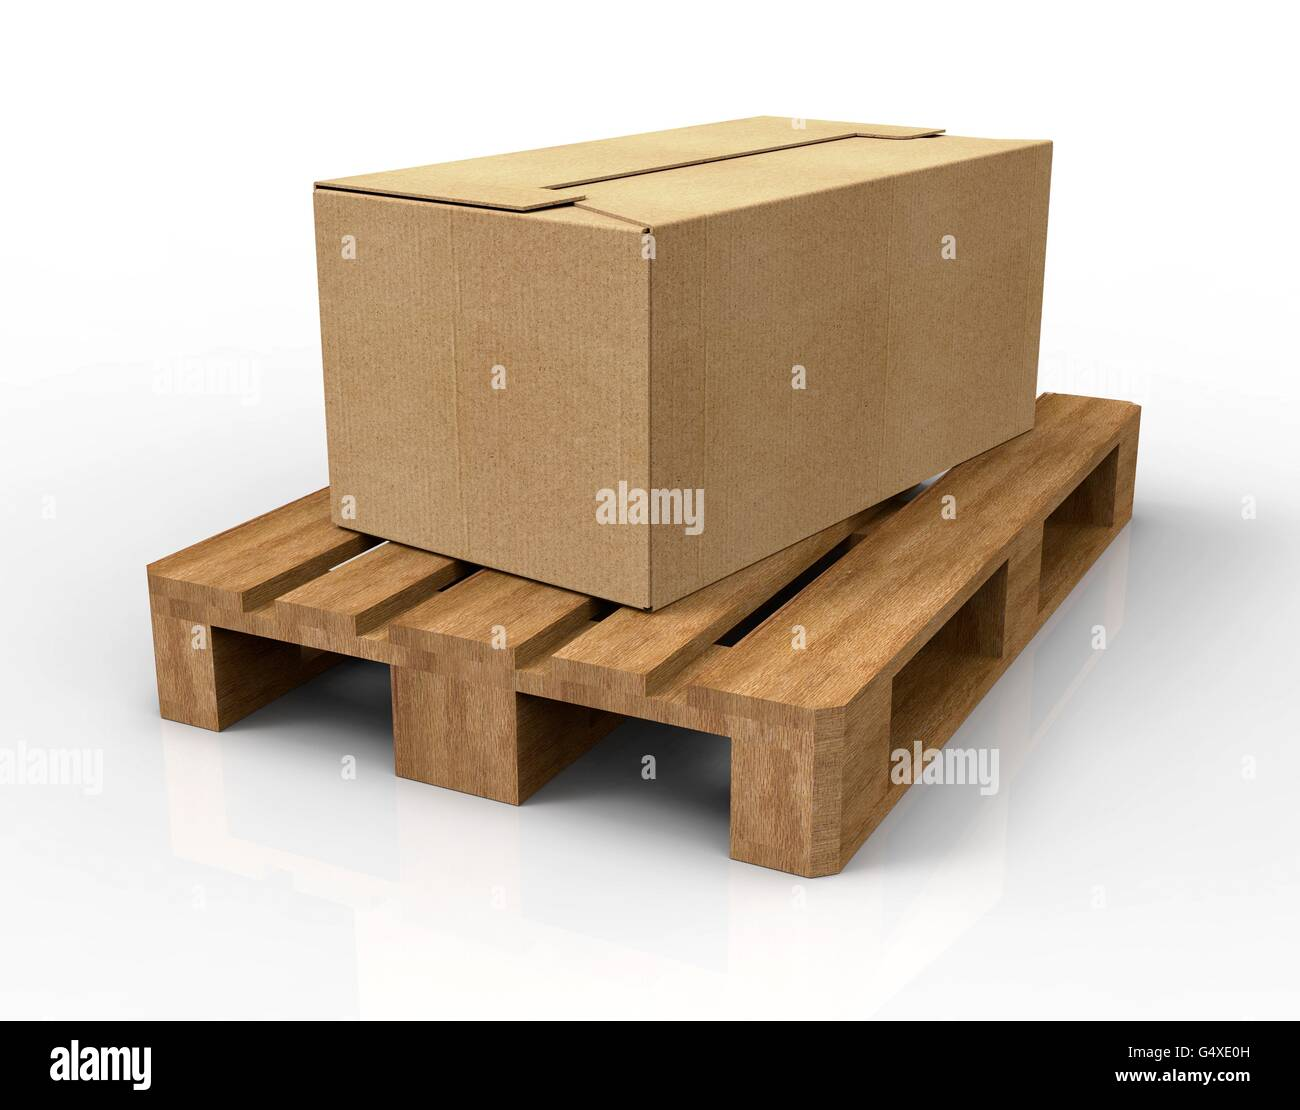 pallet isolated on white carton. - Stock Image